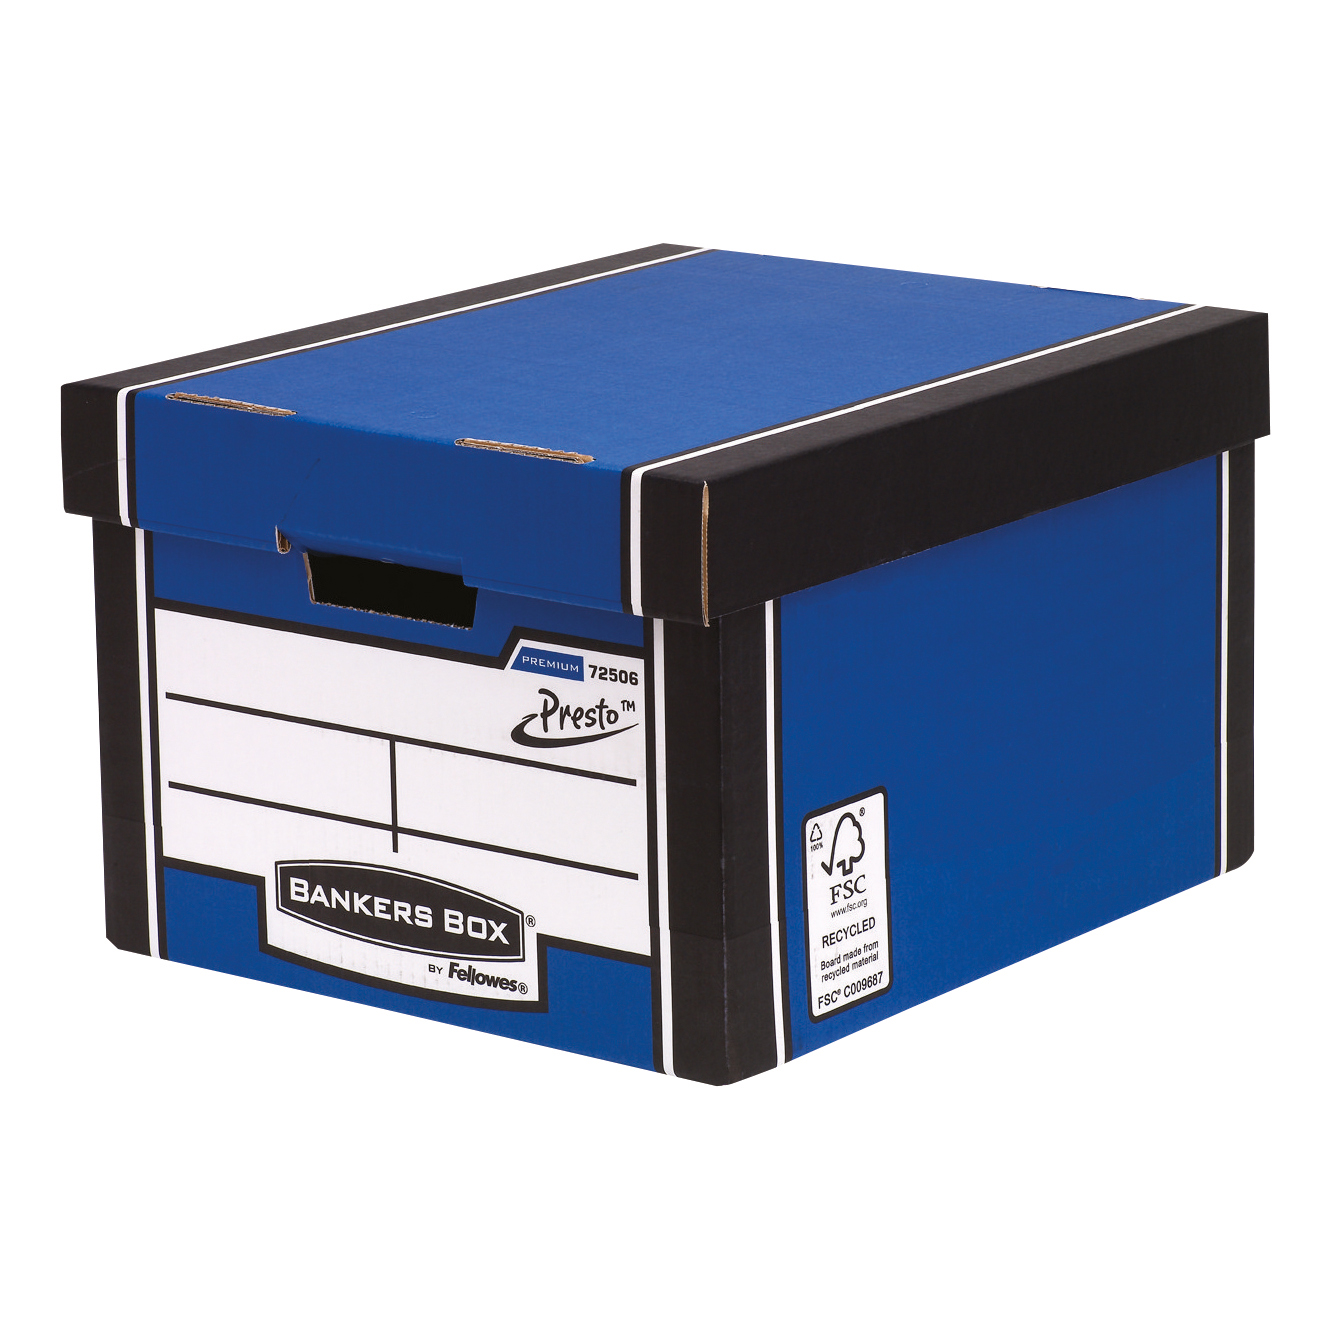 Bankers Box Premium Storage Box Presto Classic Blue FSC Ref7250603 Pack 12 12 for the price of 10